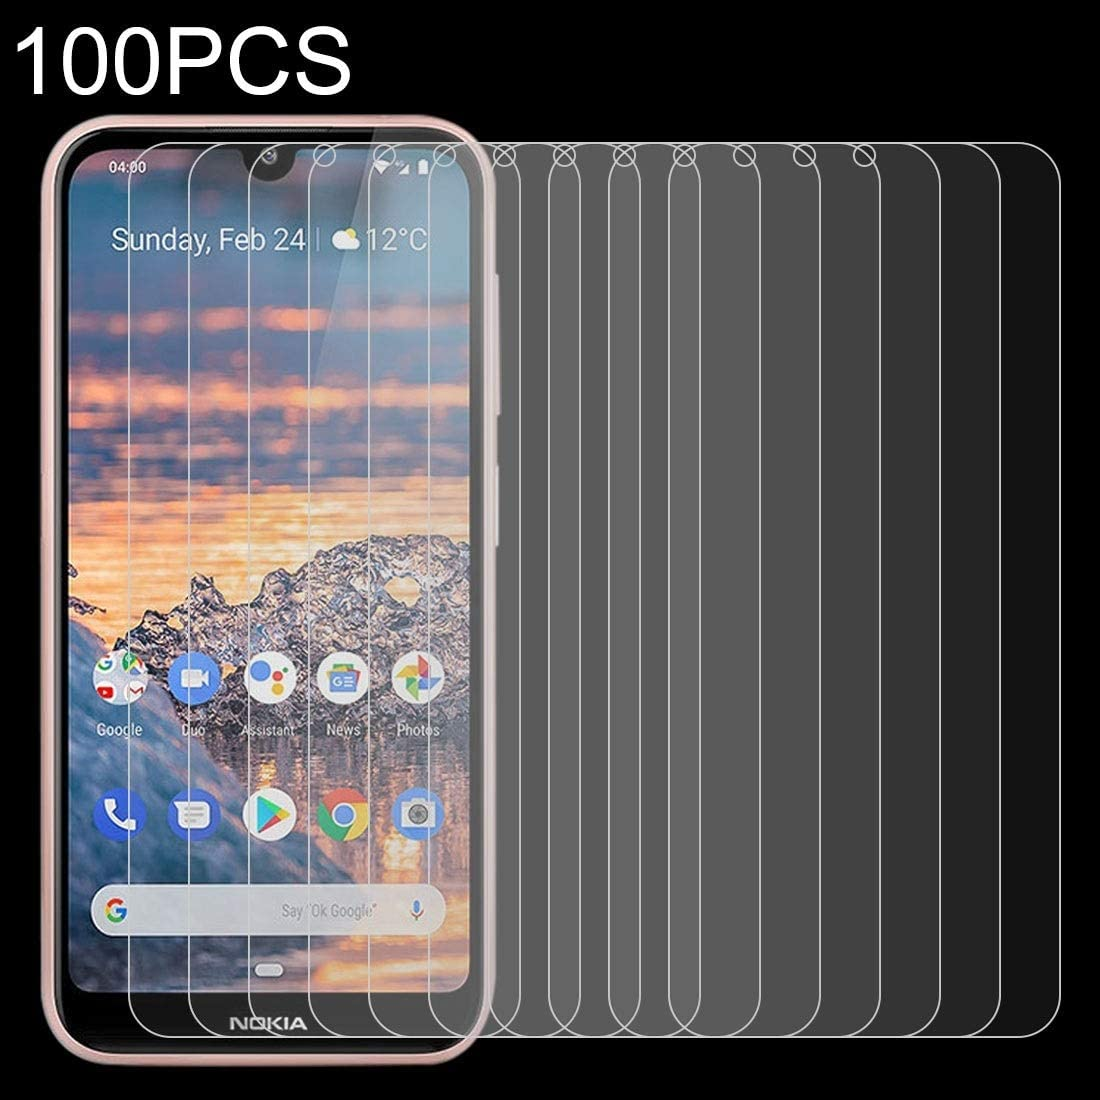 GUOHUN Screen Protector Protective 100 PCS 0.26mm 9H 2.5D Tempered Glass Film for Nokia 4.2 Glass Film